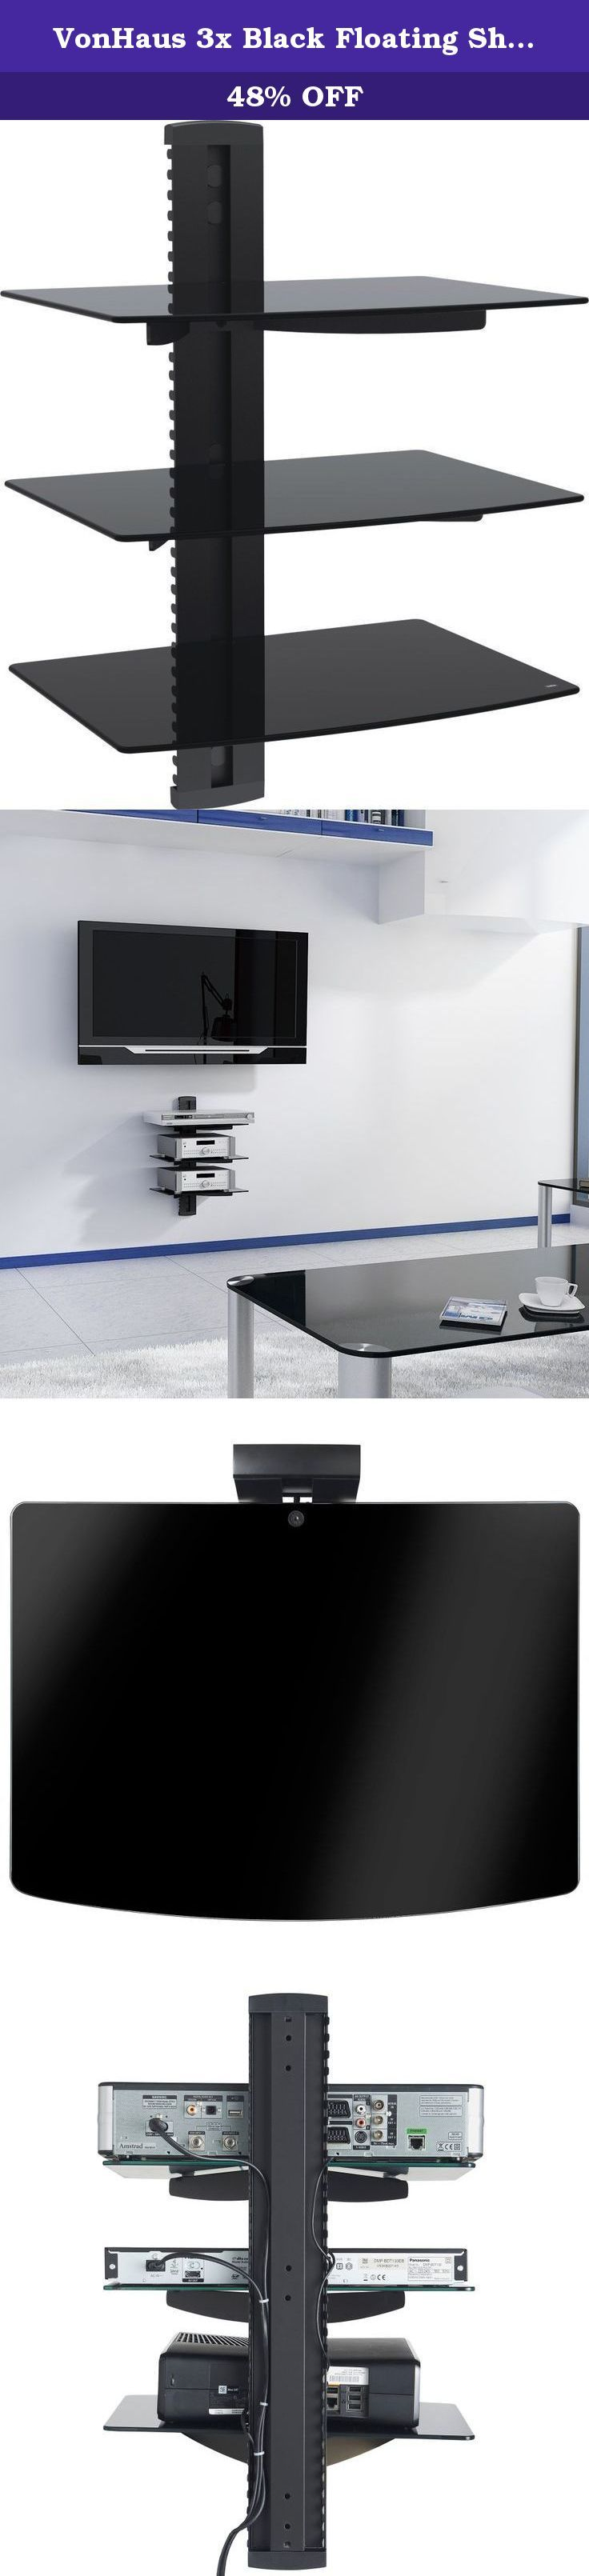 VonHaus 3x Black Floating Shelves with Strengthened Tempered Glass for DVD Players/Cable Boxes/Games Consoles/TV Accessories. These Floating Glass TV Accessory Shelves are designed to support your entertainment accessories such as: DVD / Blu-Ray Players / Games Consoles / Surround Sound / Satellite TV Box / Cable TV Box / Freeview Box / Sky Box / Tivo Box etc.. . The shelves are designed to accompany a wall mounted television. When you have a TV mounted to the wall you will often find…